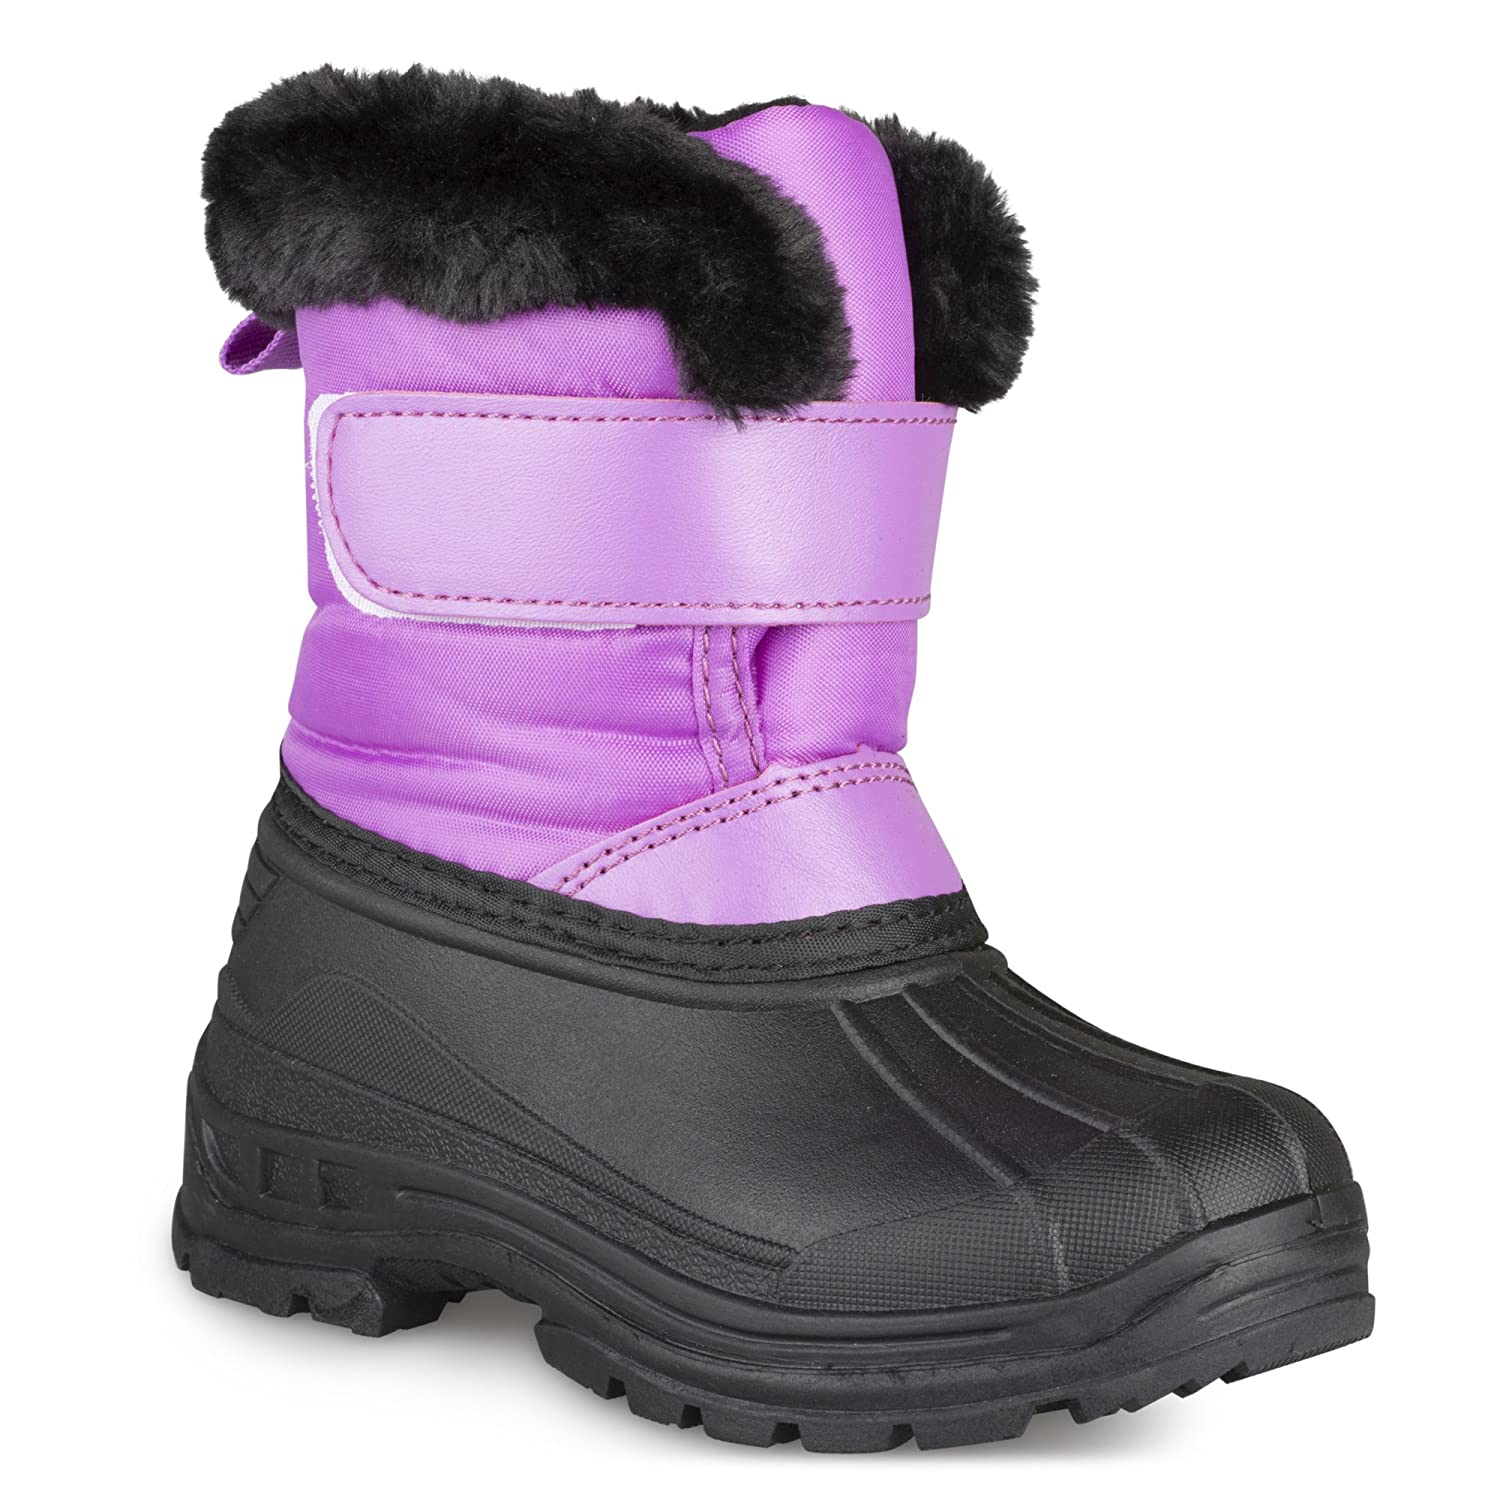 354e85da54be EASY TO PUT ON - Slip on style with hook and loop closure makes it easy for  little kids to put on their own boots and get out the door quickly